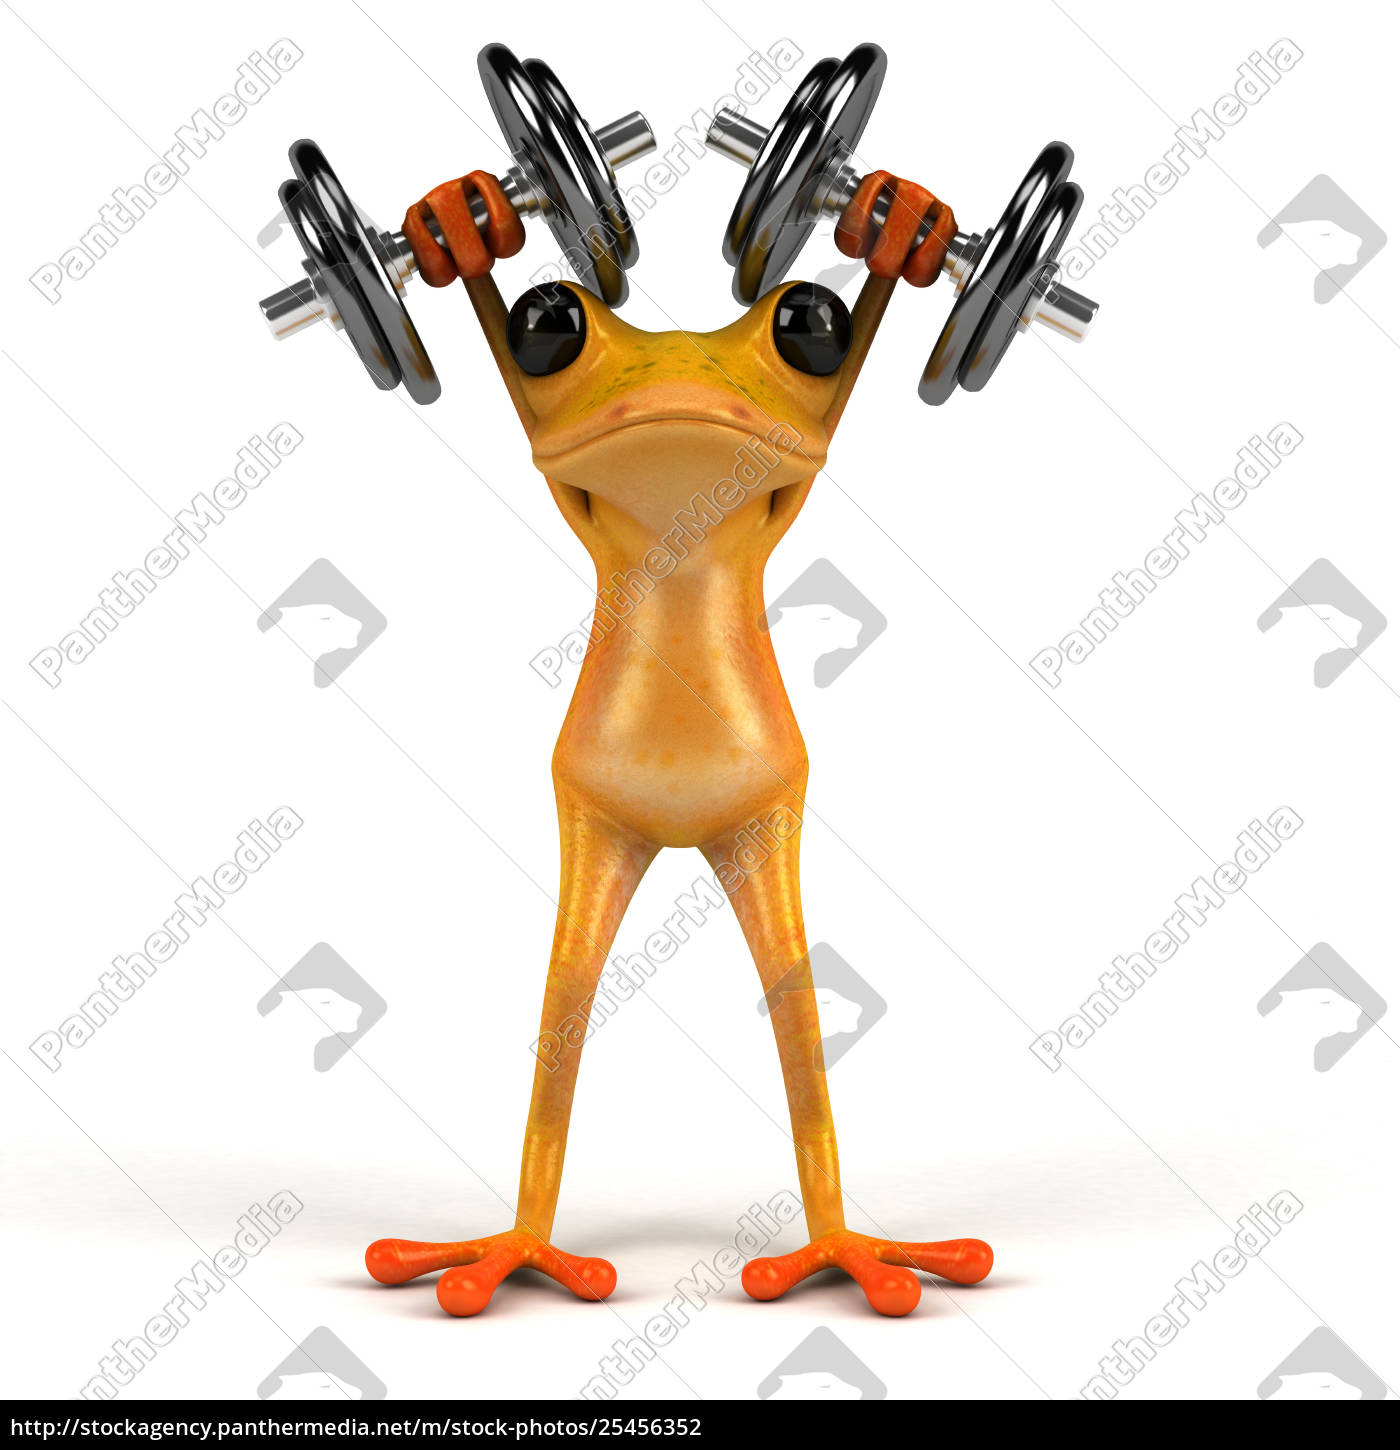 fun, frog-, 3d, illustration - 25456352